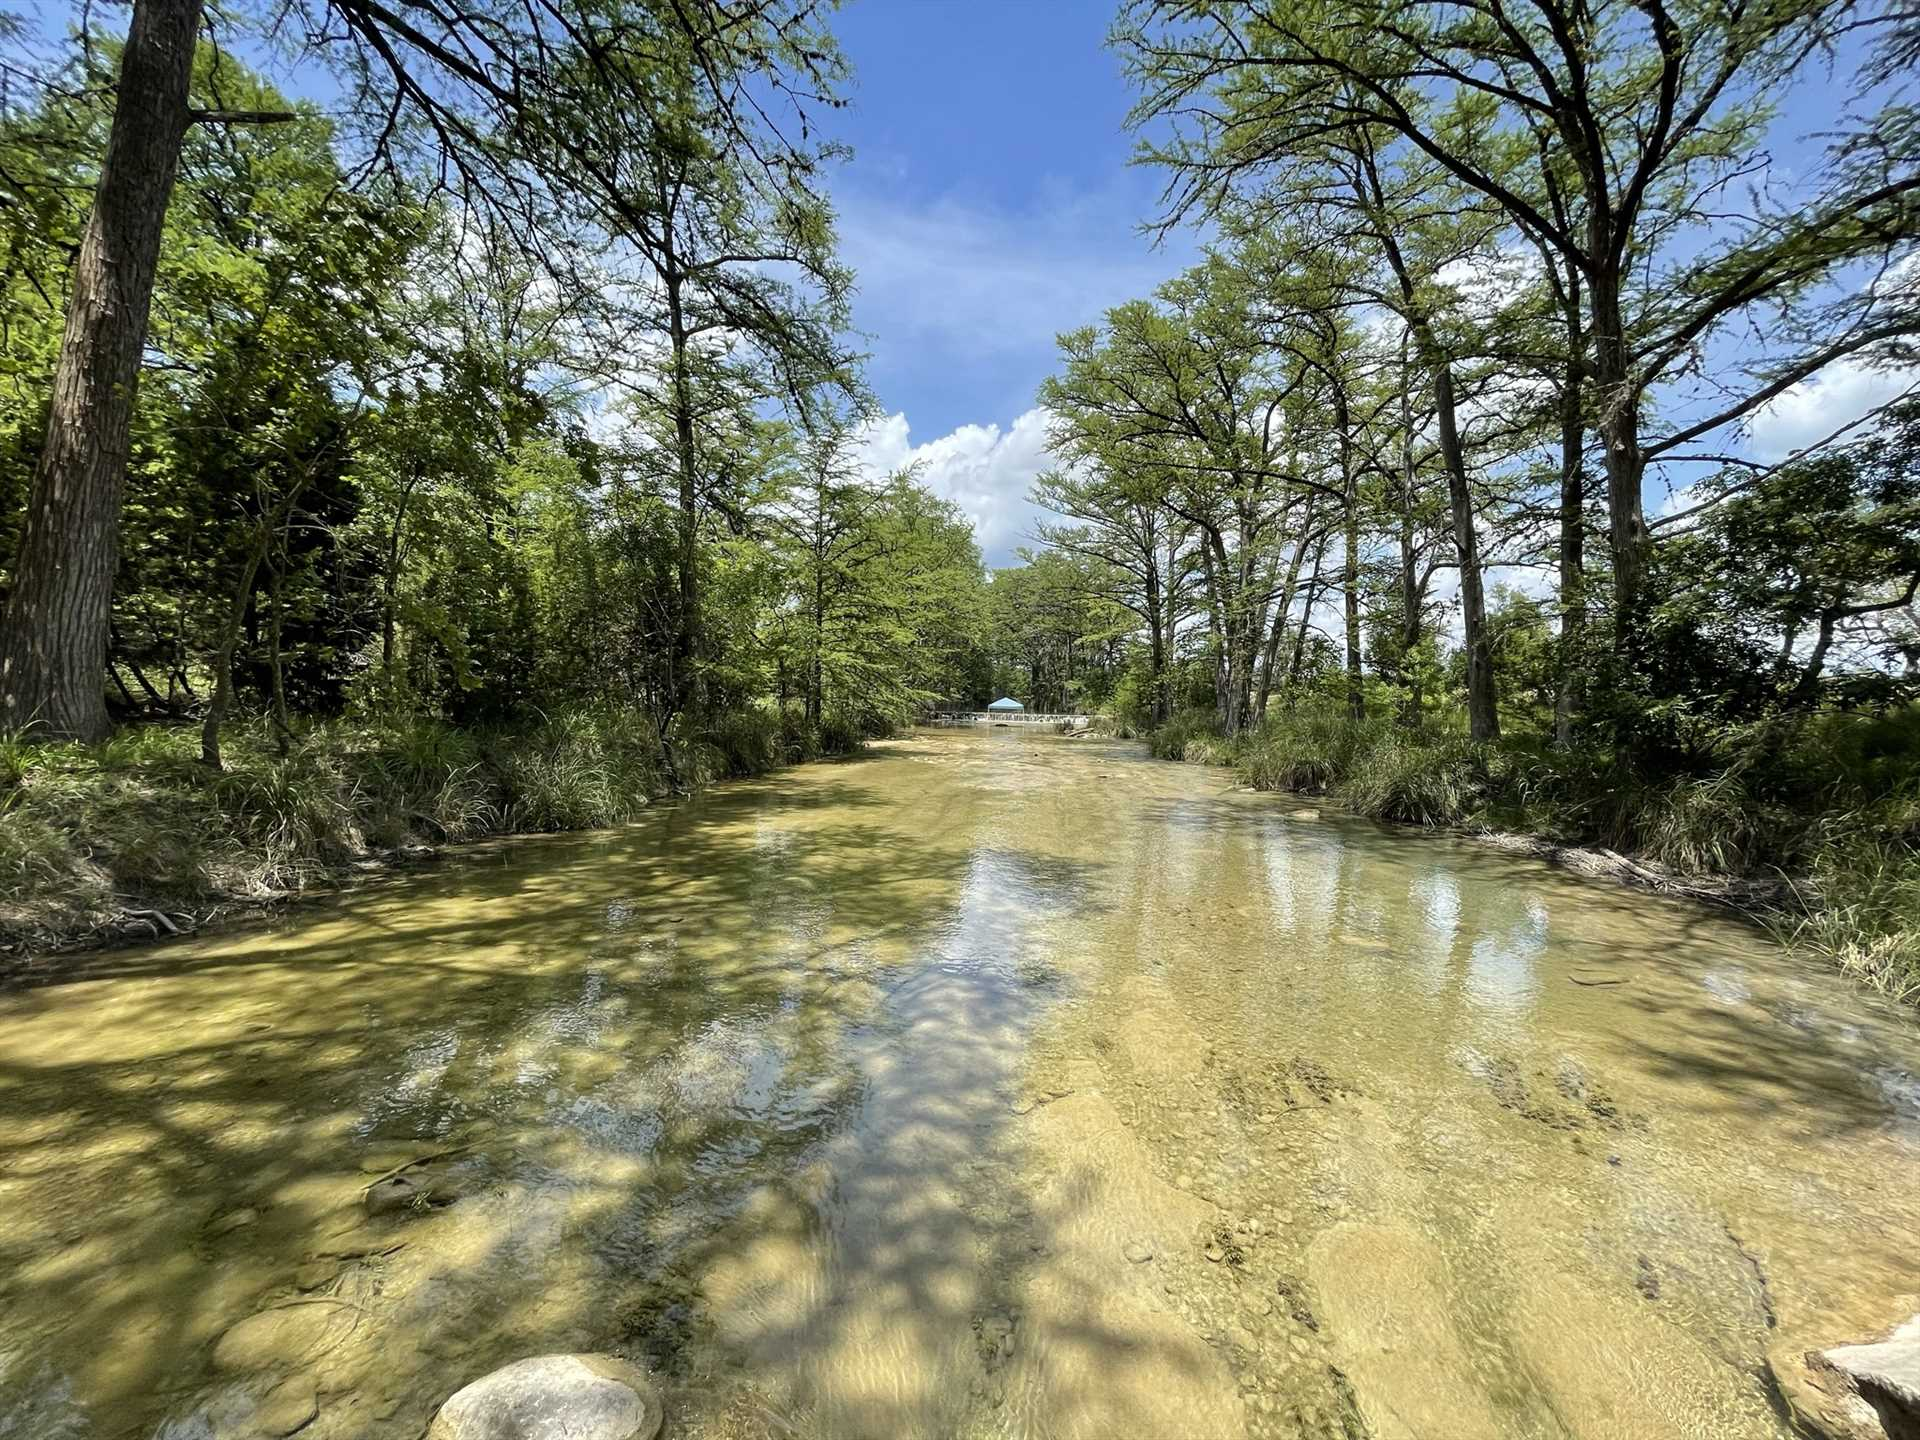 The depth of the Medina varies from one to eight feet down this stretch, perfect for fishing, tubing, and swimming.